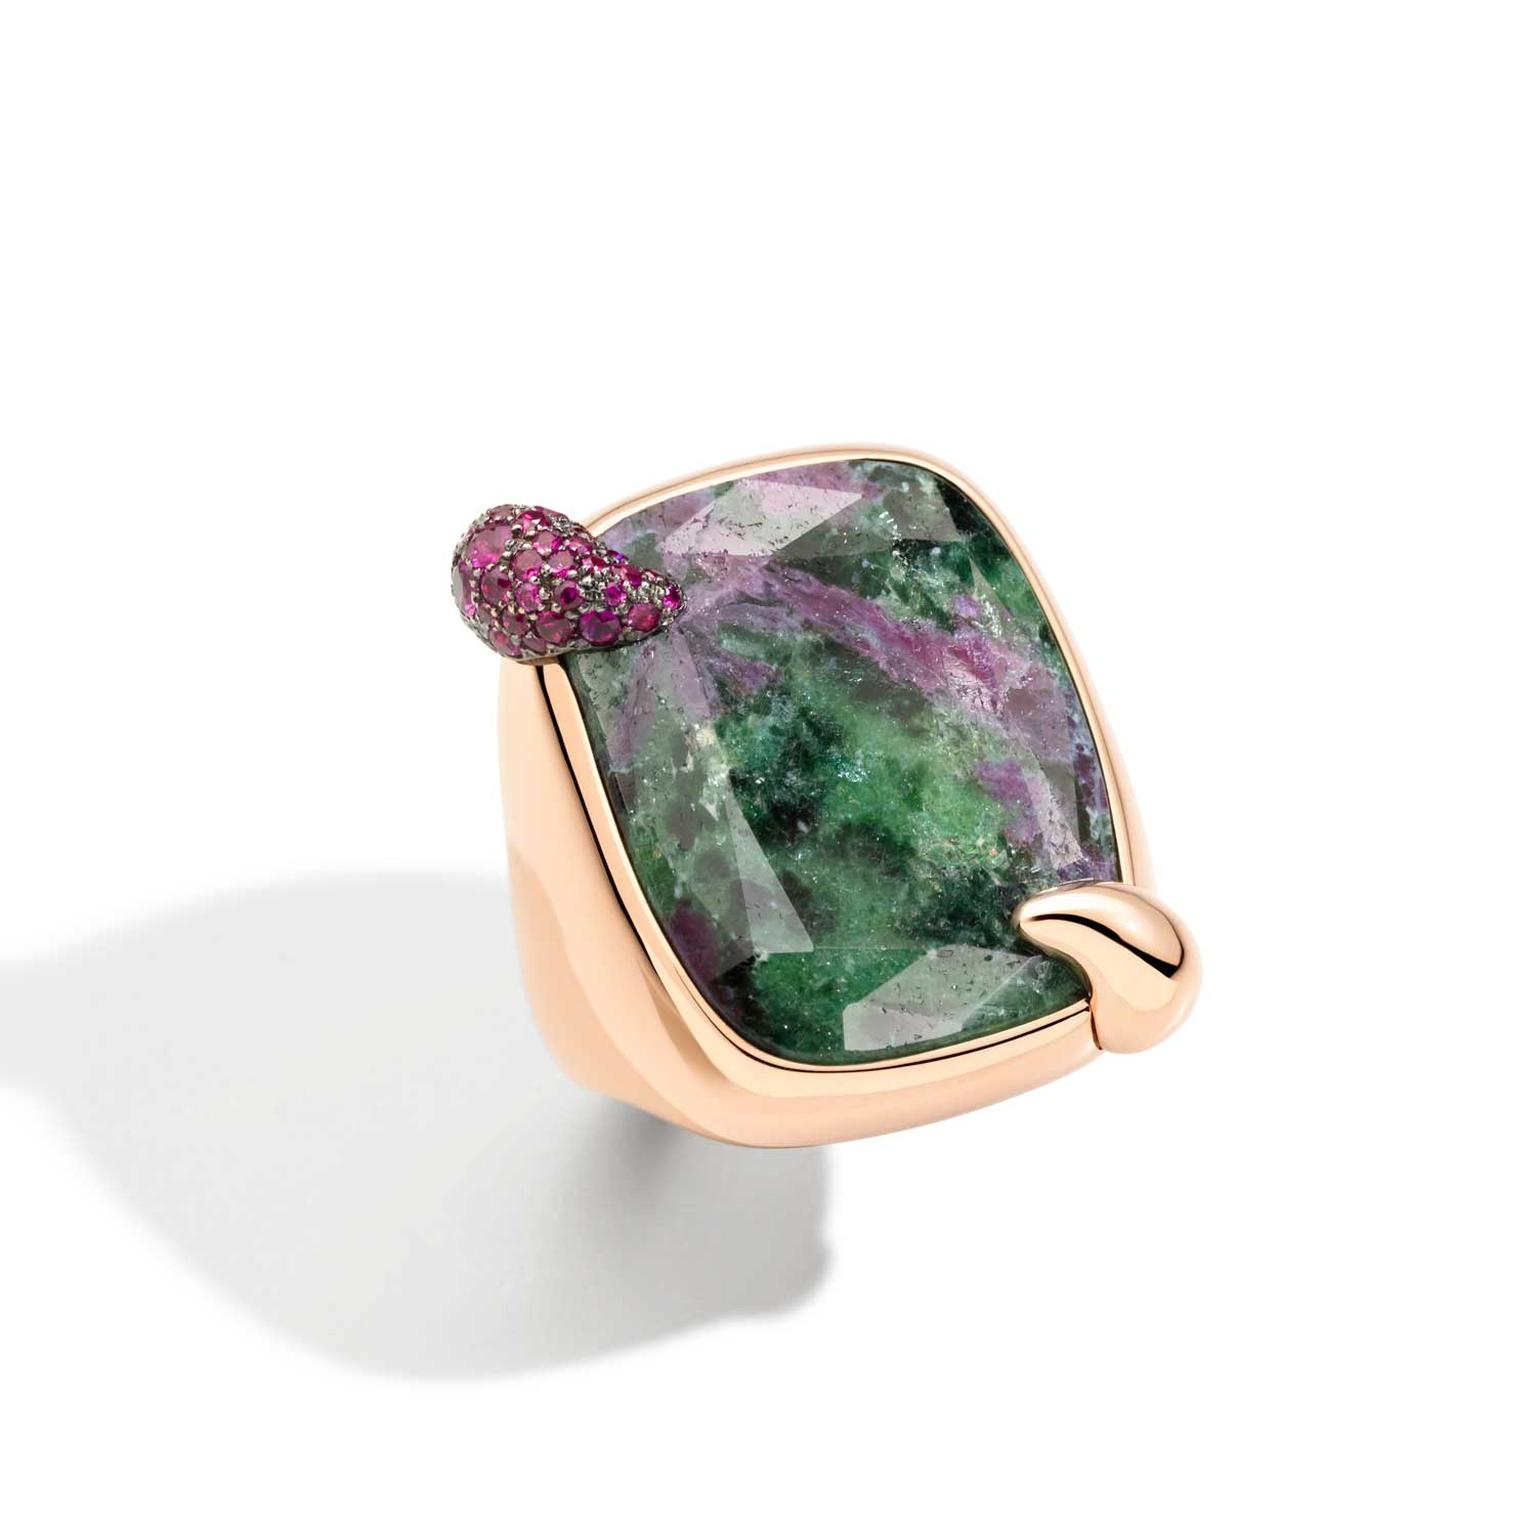 Pomellato Ritratto 50th anniversary Secret Garden zoisite ring with ruby inclusions